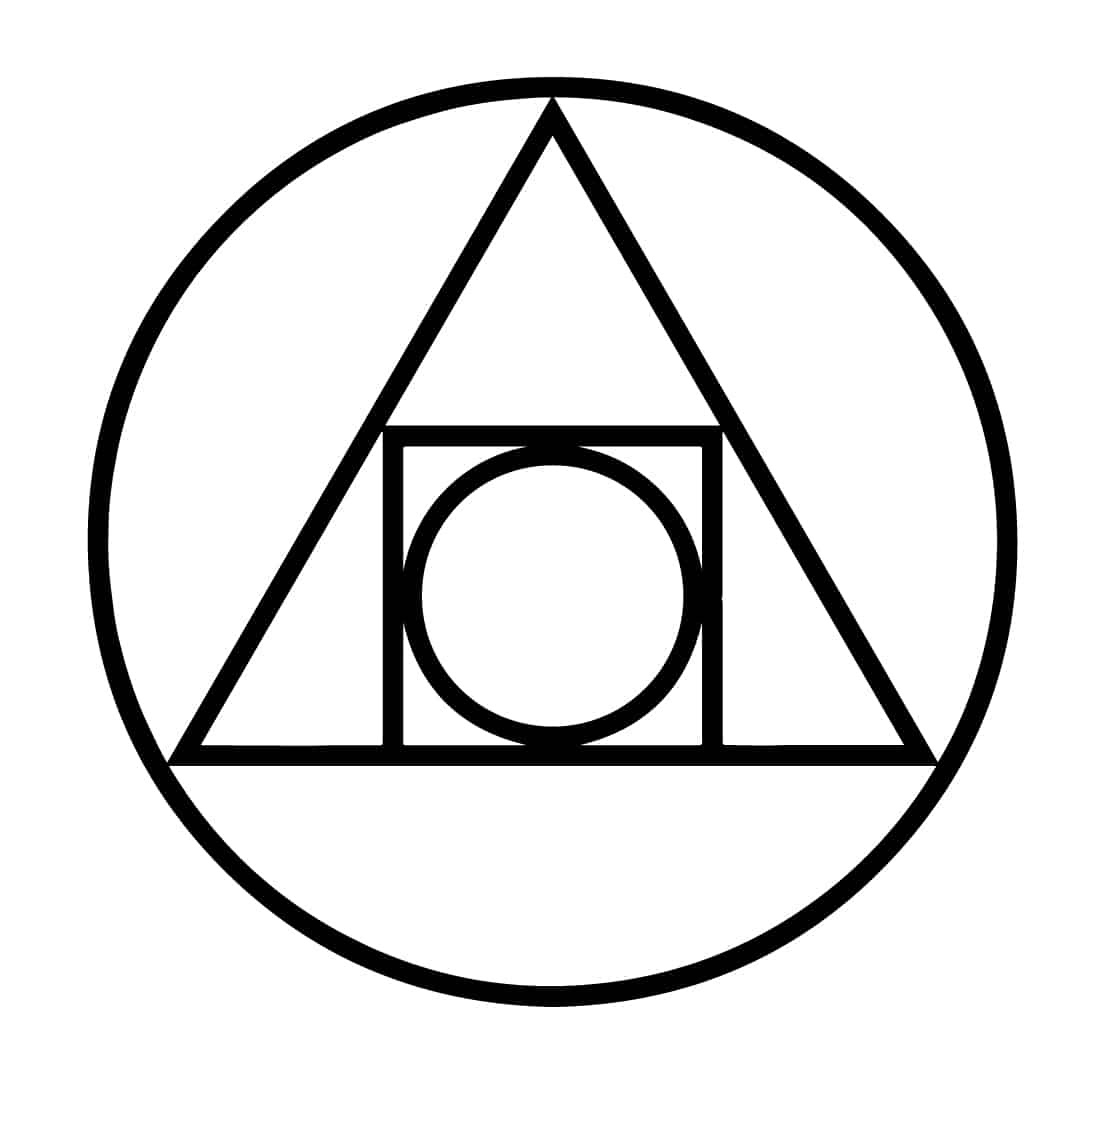 Alchemy Symbols And Their Meanings The Extended List Of Alchemical